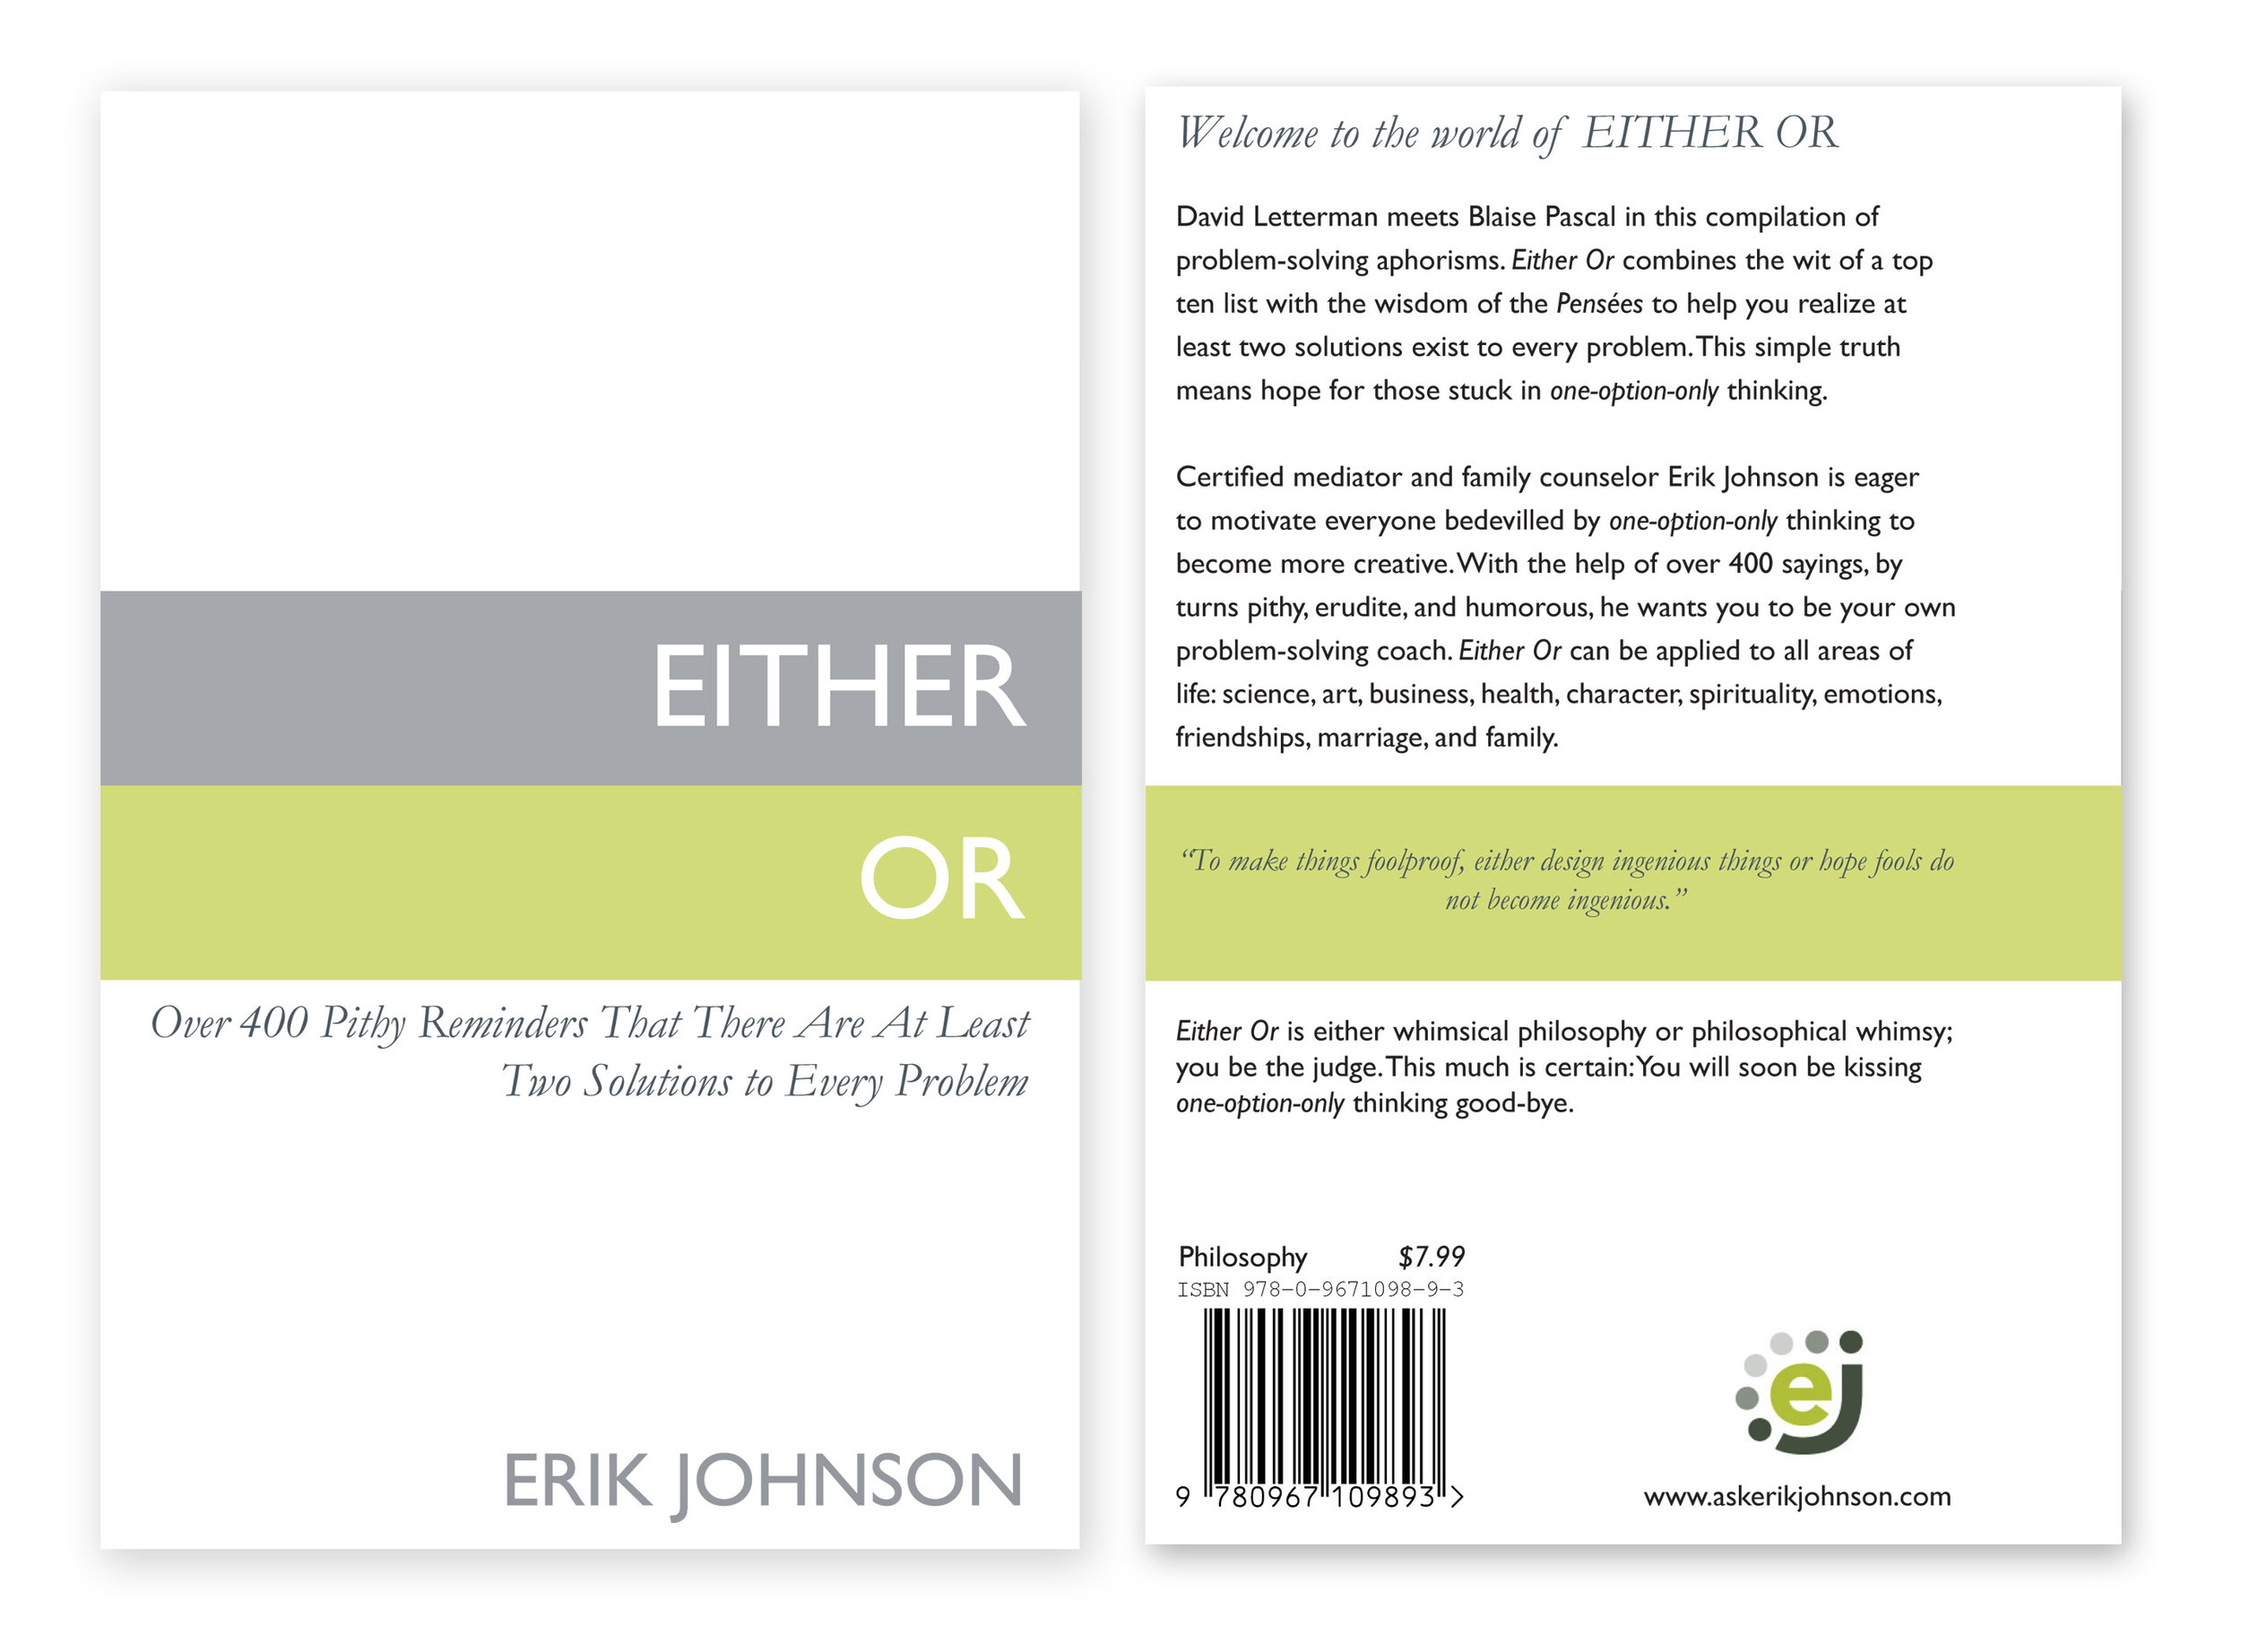 Book cover design 2011